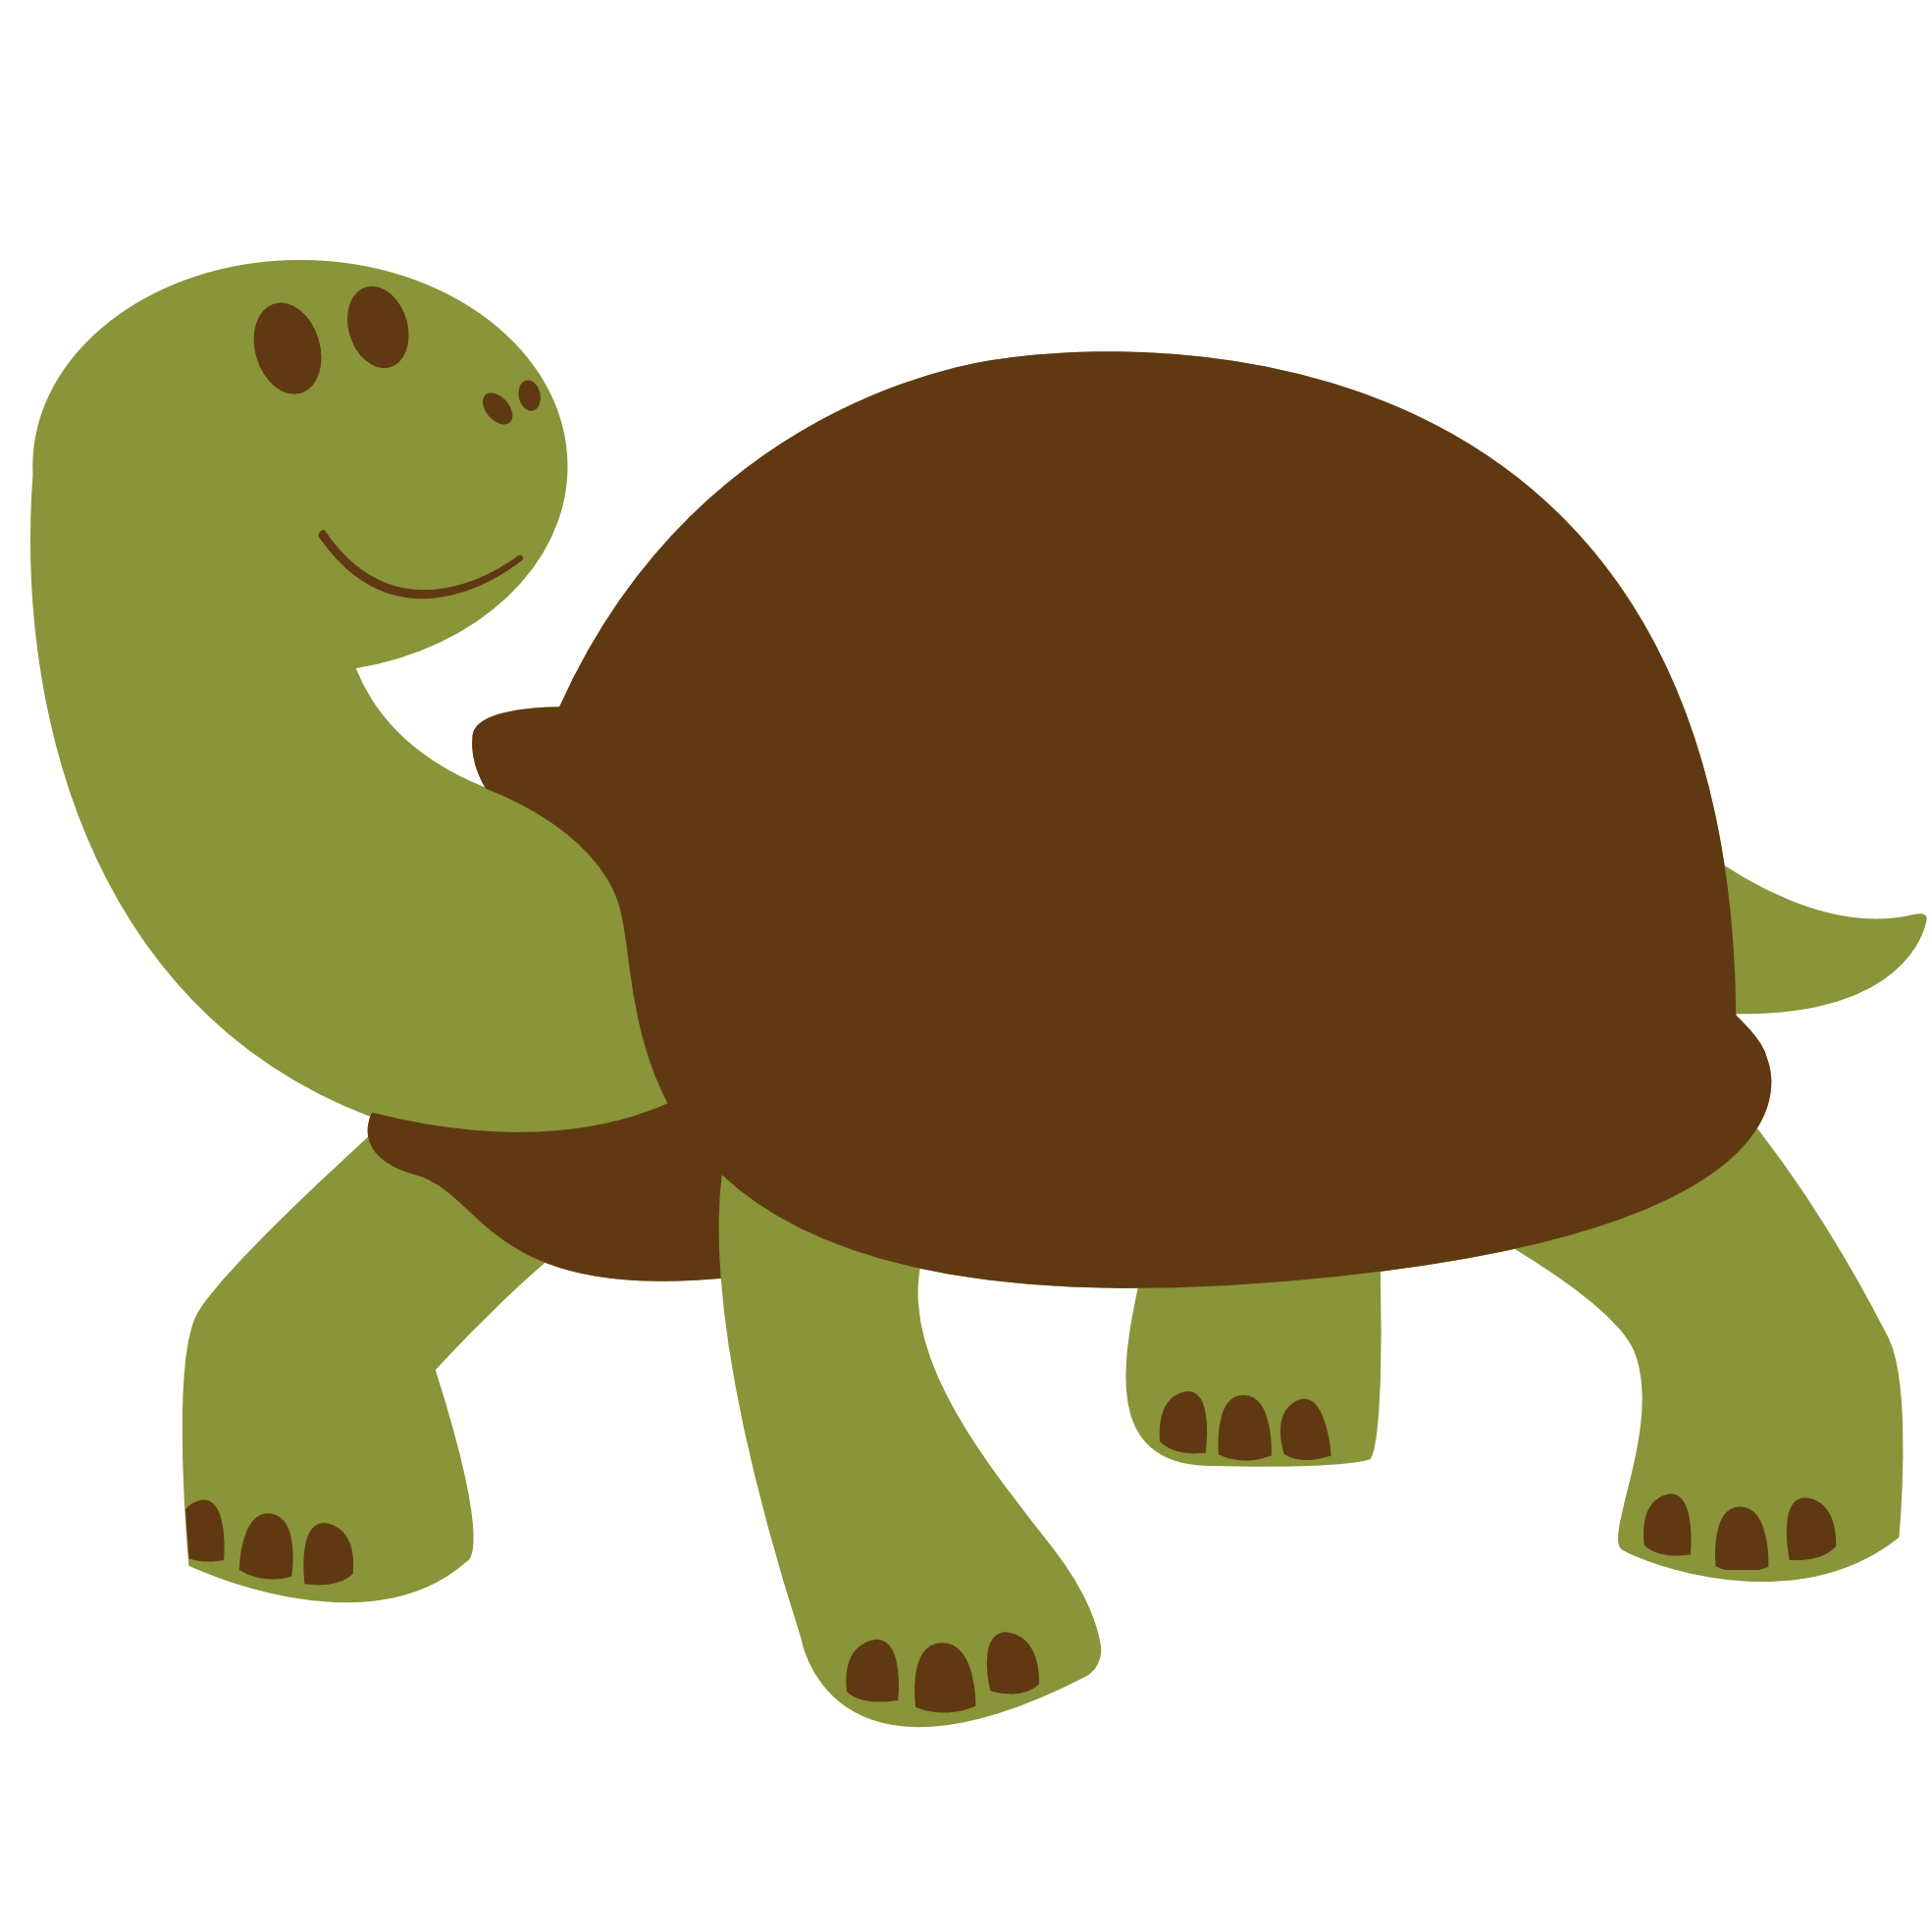 Clipart turtle vector. Turtlevector an images hub